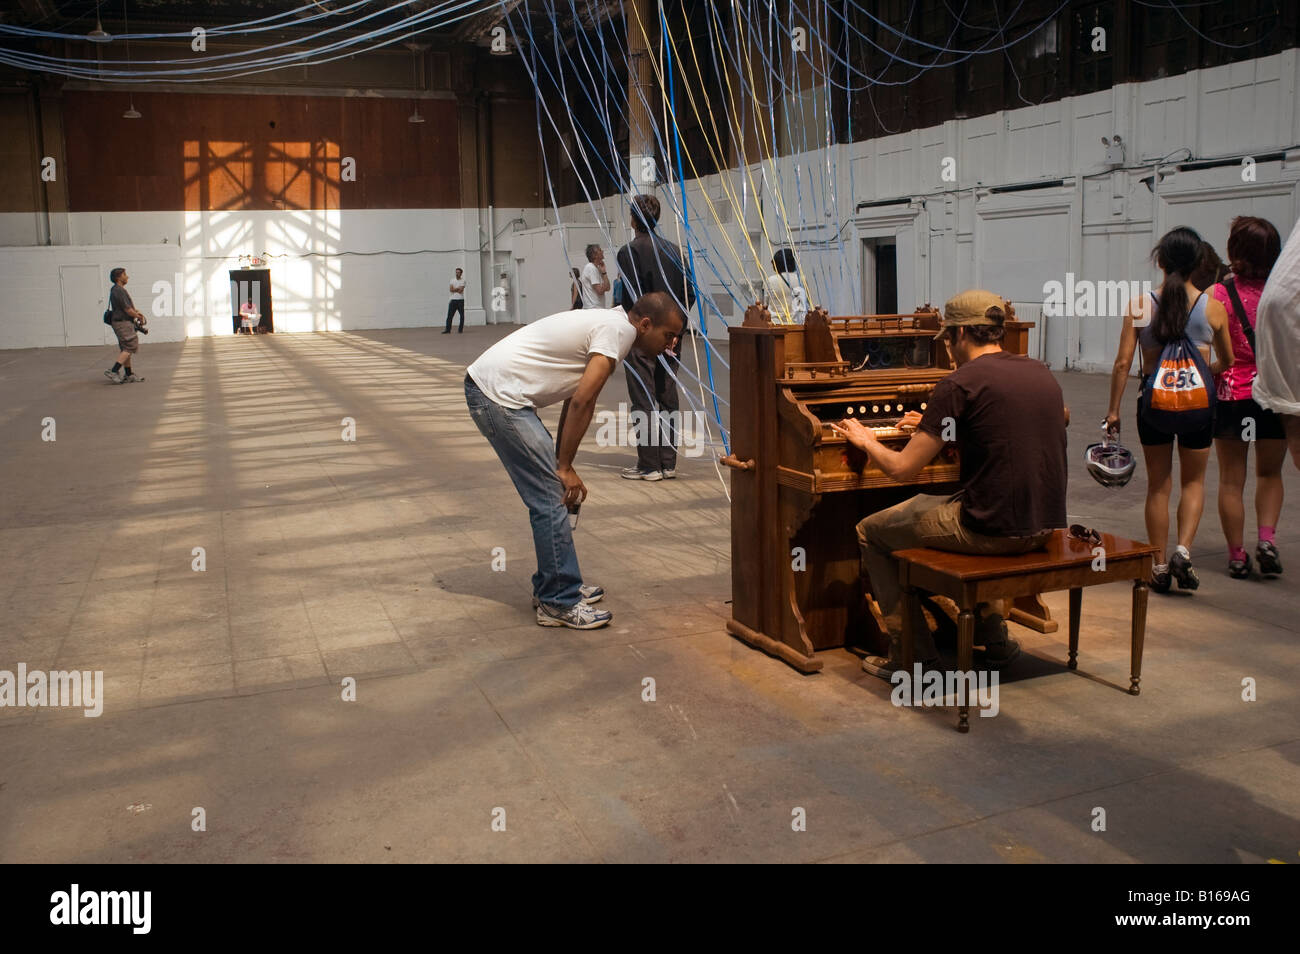 Playing the Building An Installation by David Byrne in the Battery Maritime Building in Lower Manhattan - Stock Image